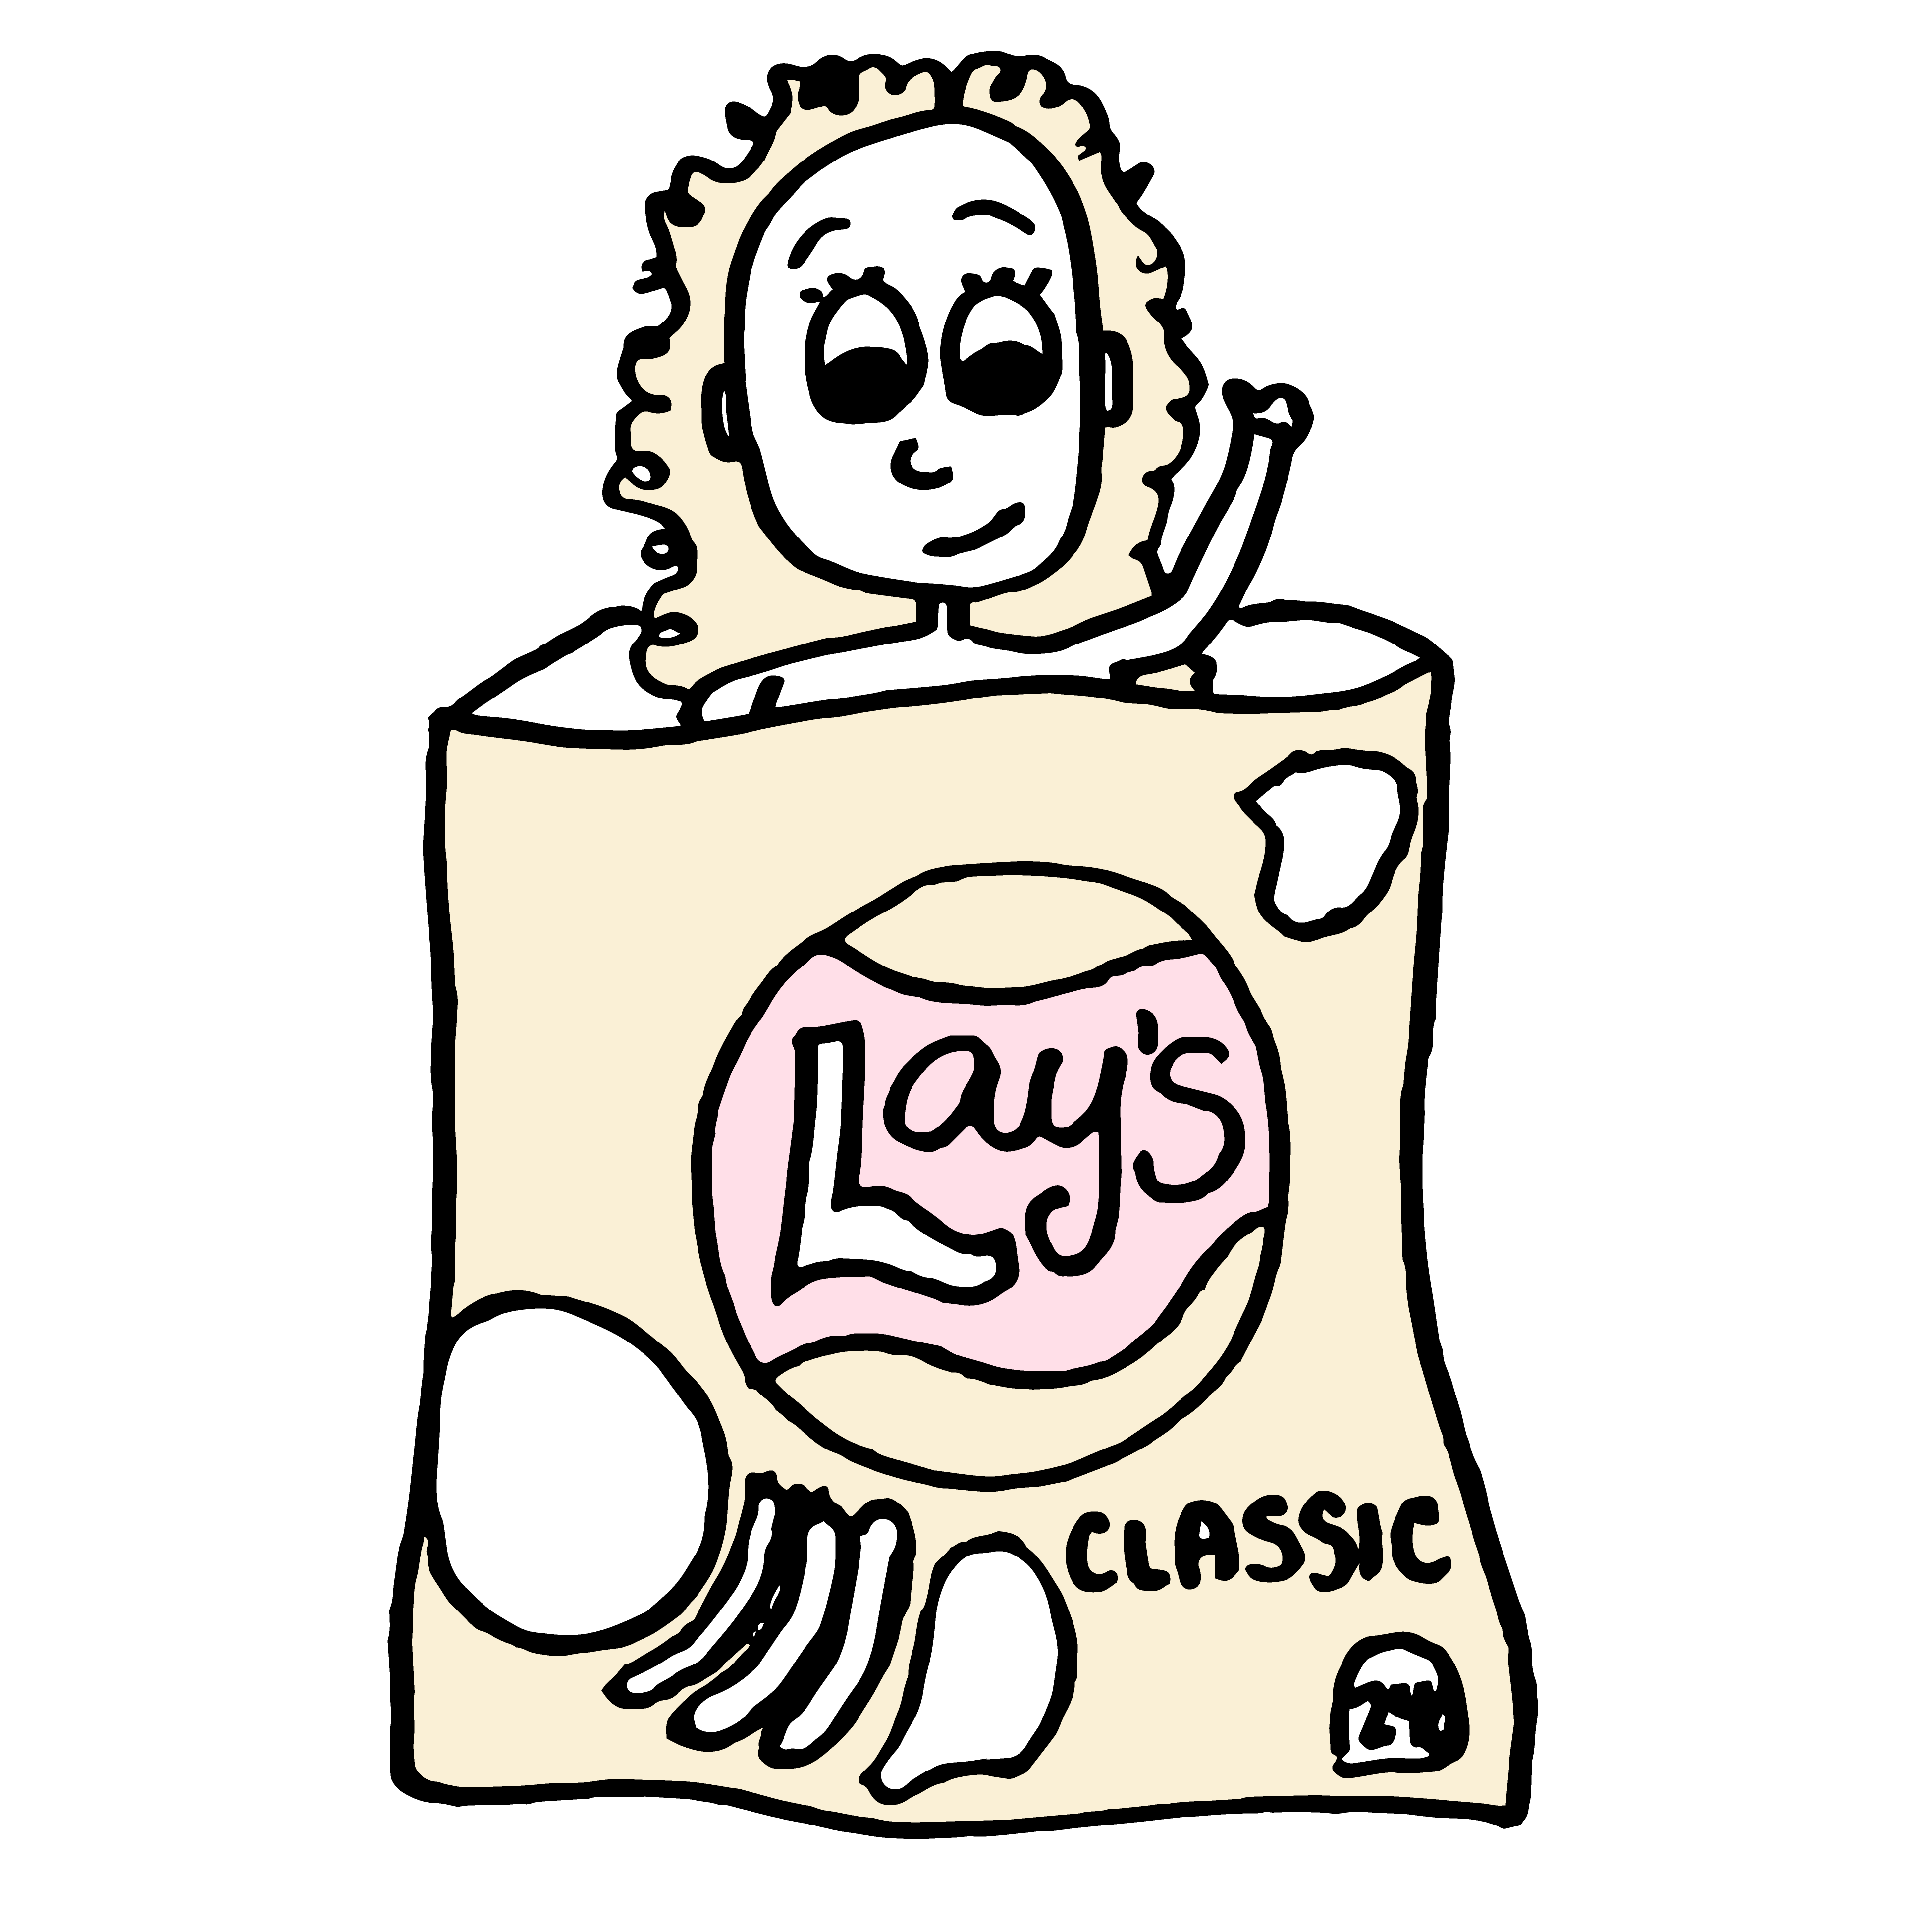 Cartoon of a woman in a chip bag